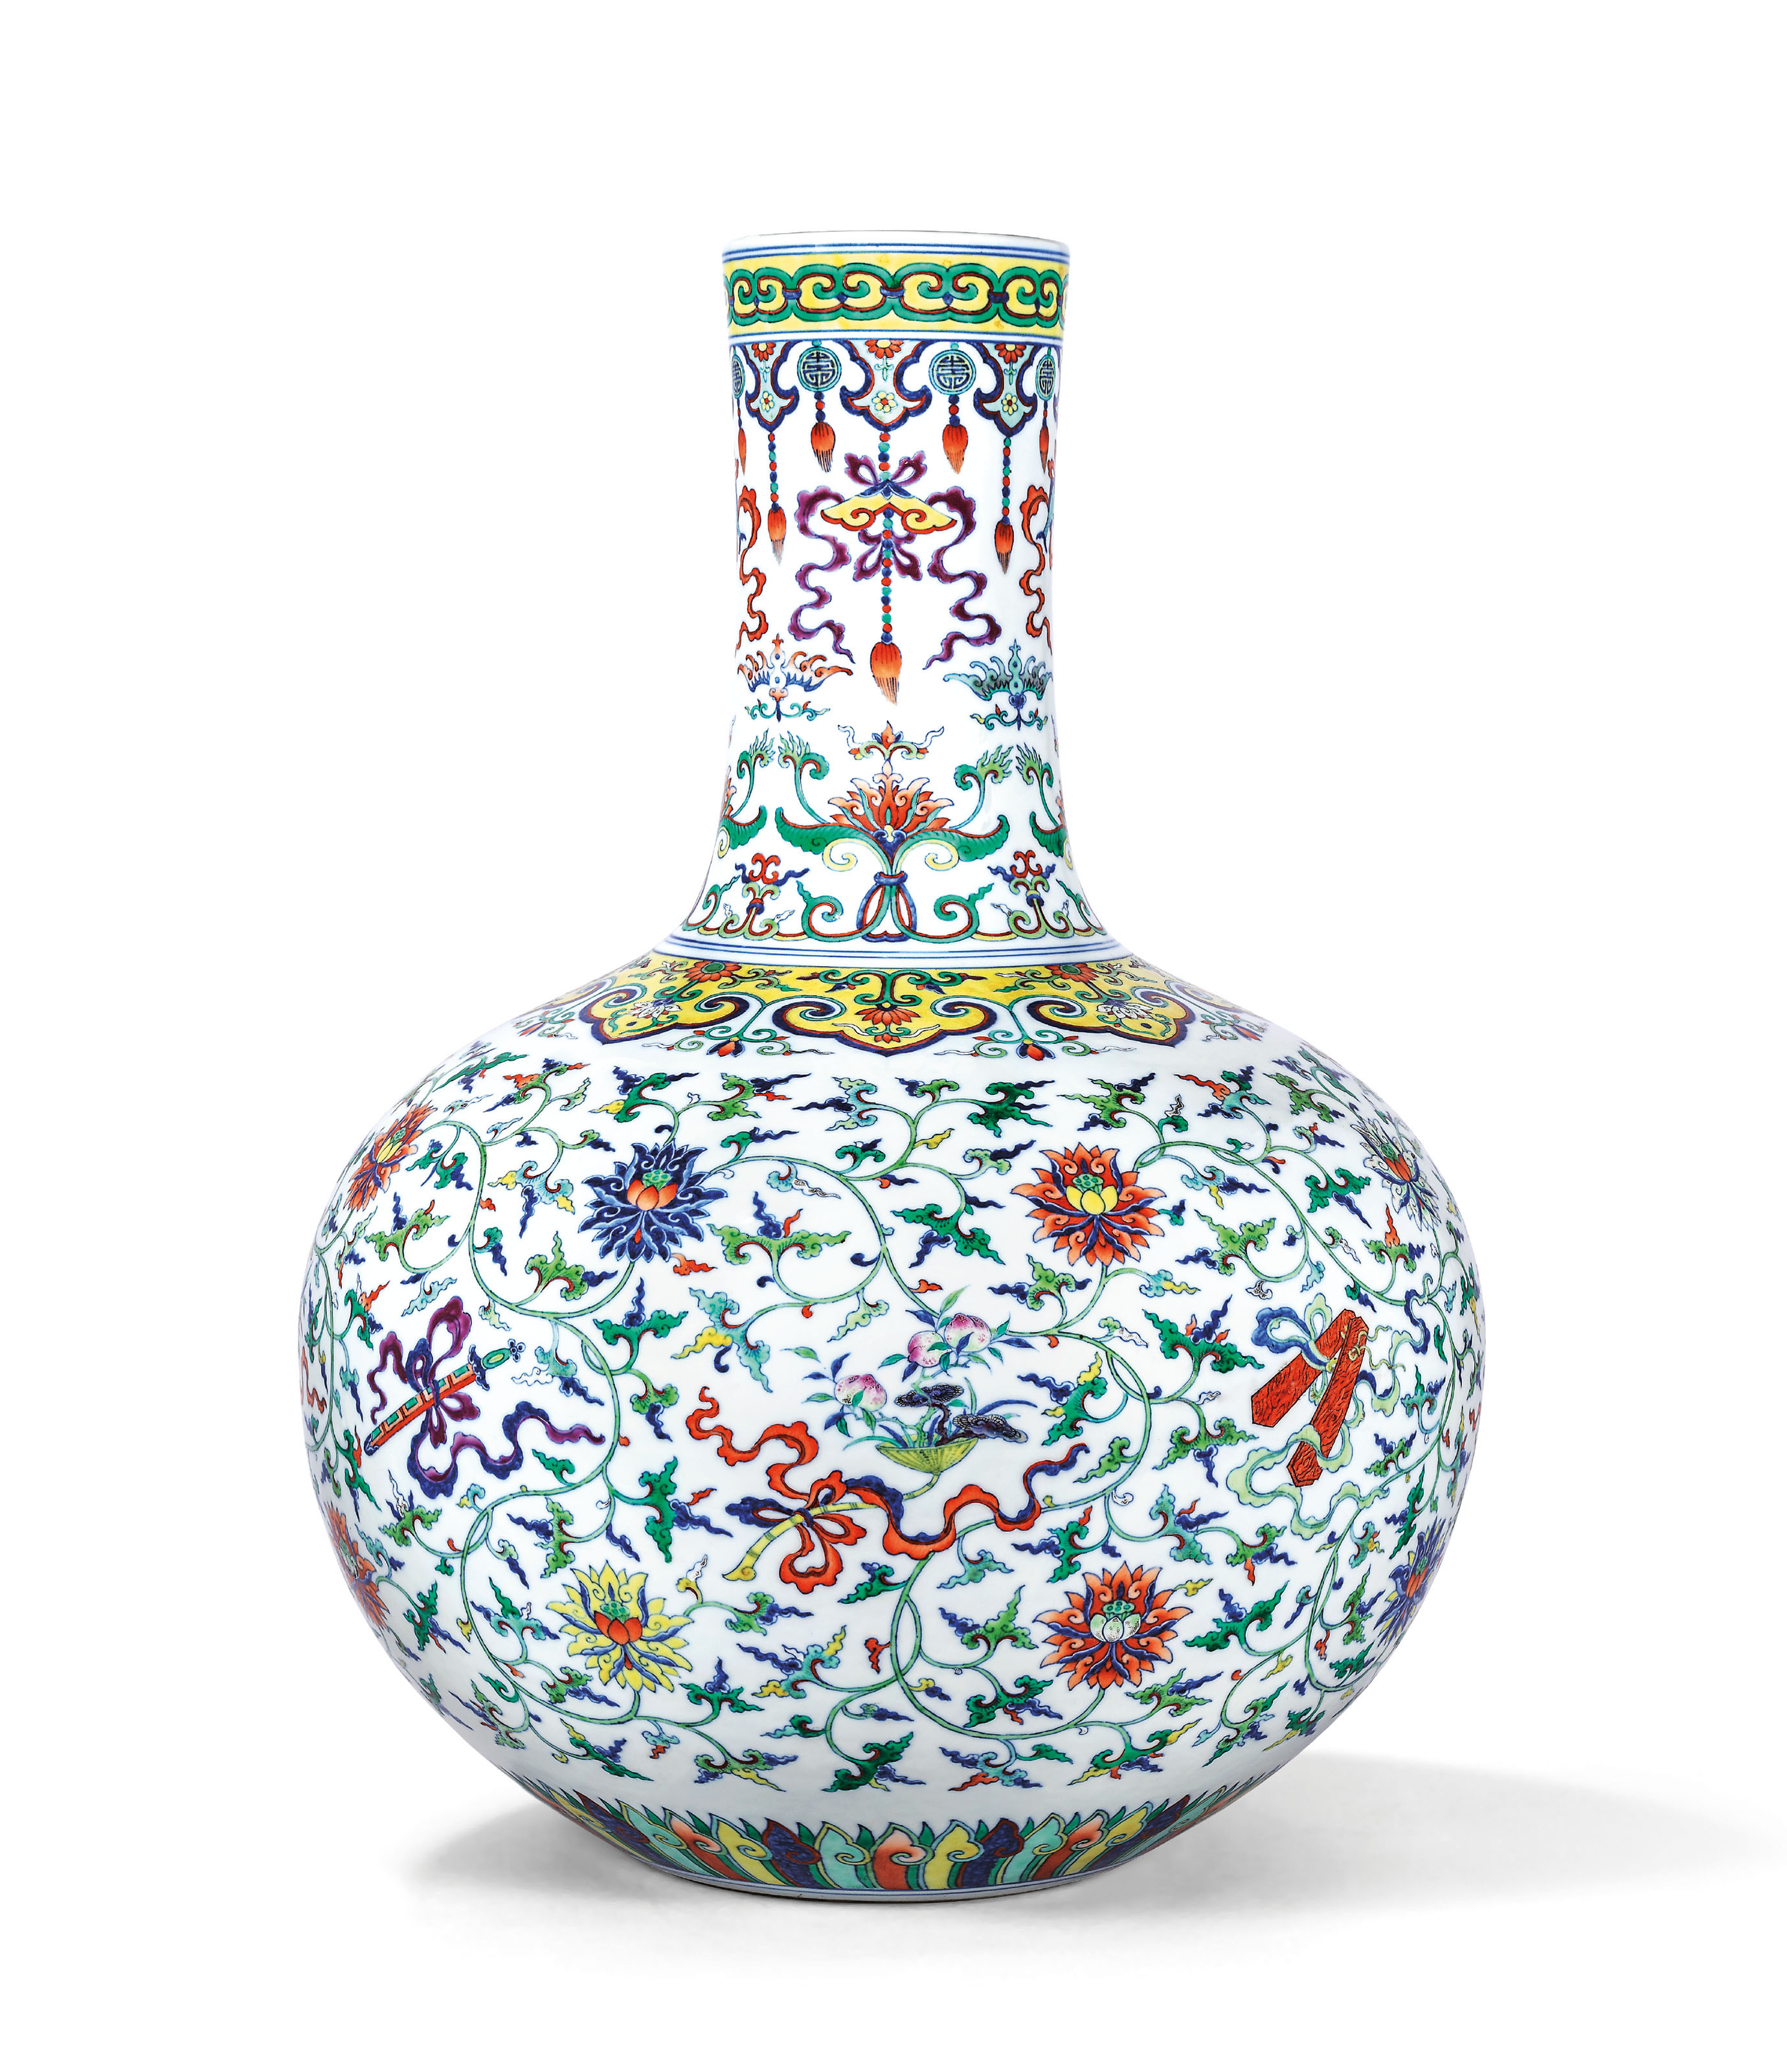 sand ceremony nesting vases of philbrook museum in this rare chinese vase languished in storage at an oklahoma museum for over a decade then it sold for 14 5 million